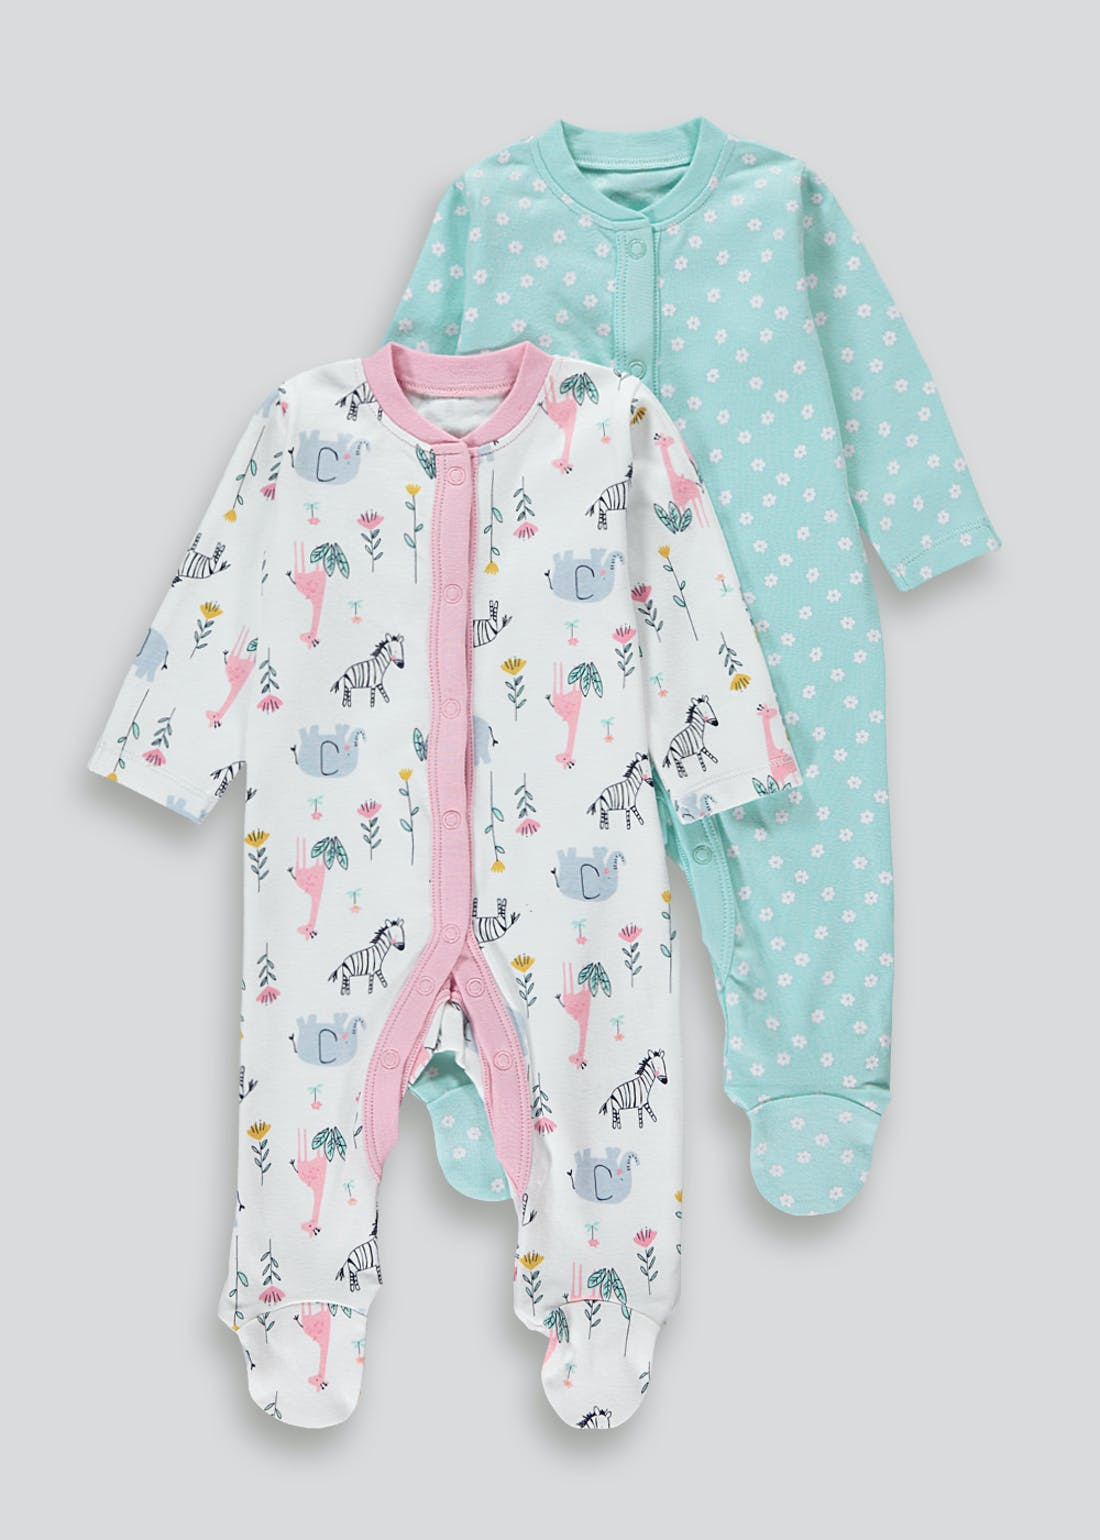 Girls 2 Pack Baby Grows (Tiny Baby-18mths)